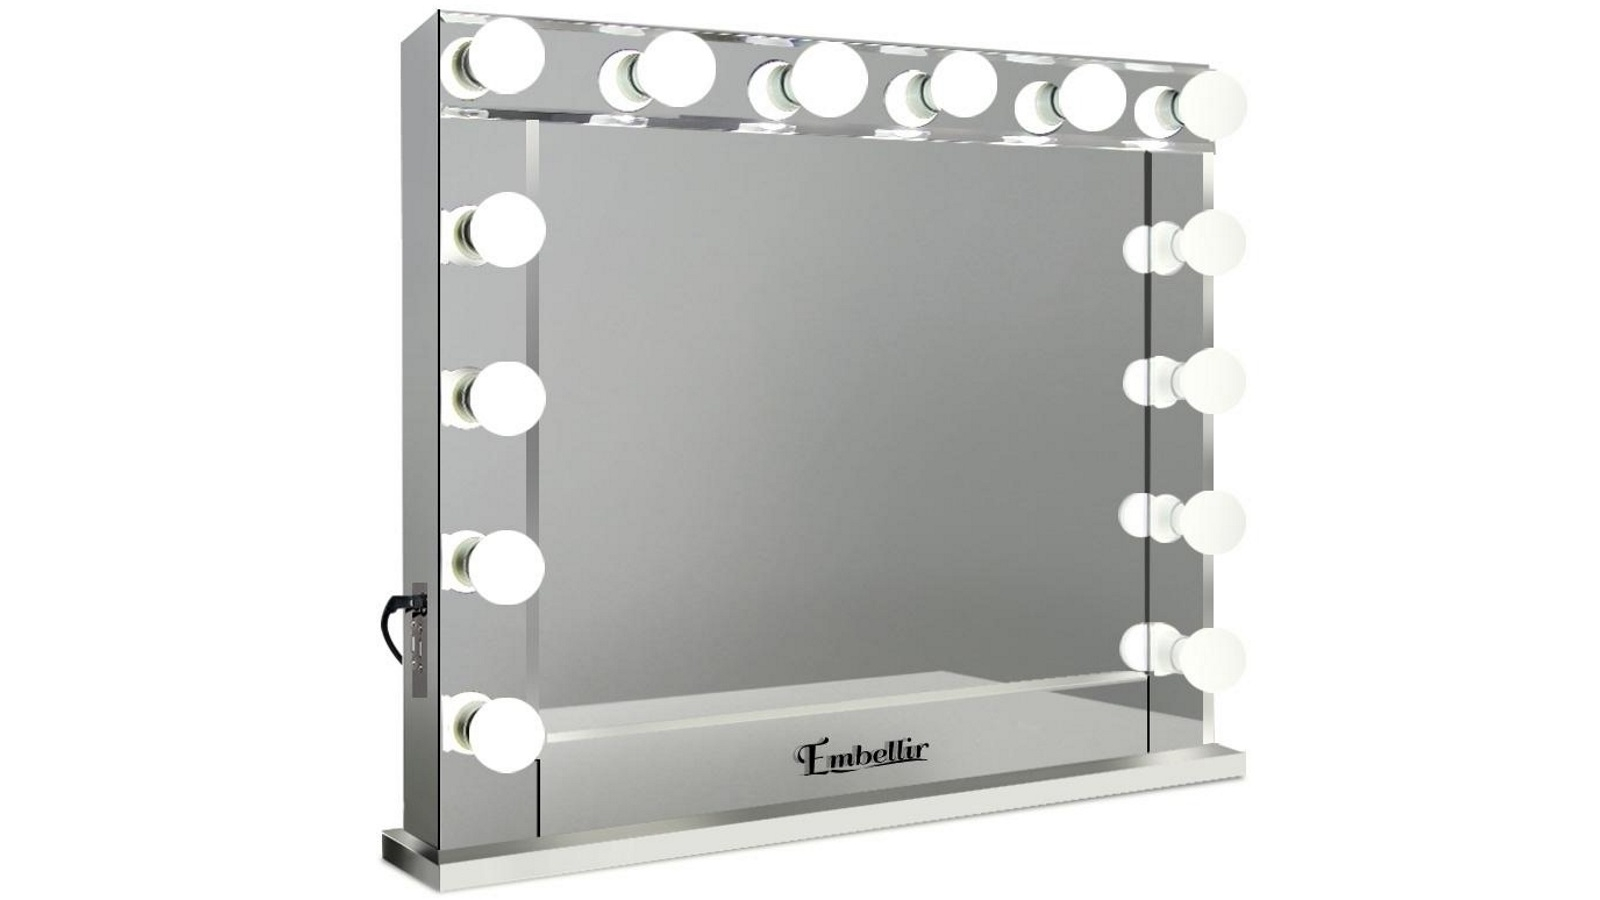 Buy Embellir Hollywood Led Makeup Mirror Harvey Norman Au